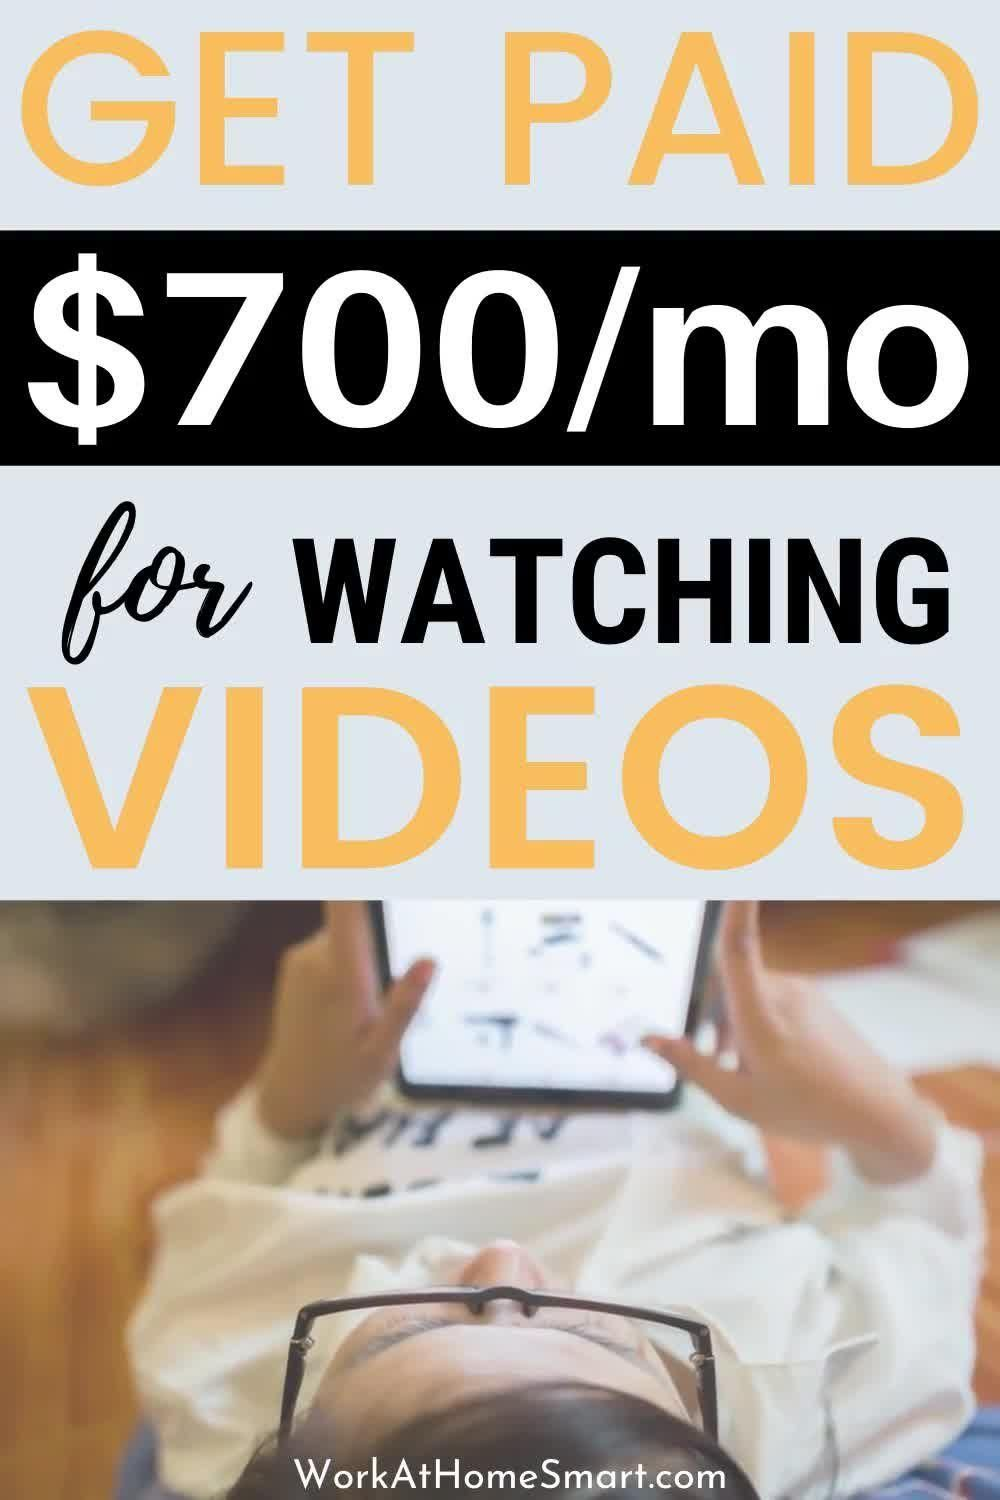 Watch Videos for Money: 10 Legit Sites & Apps That Really Pay